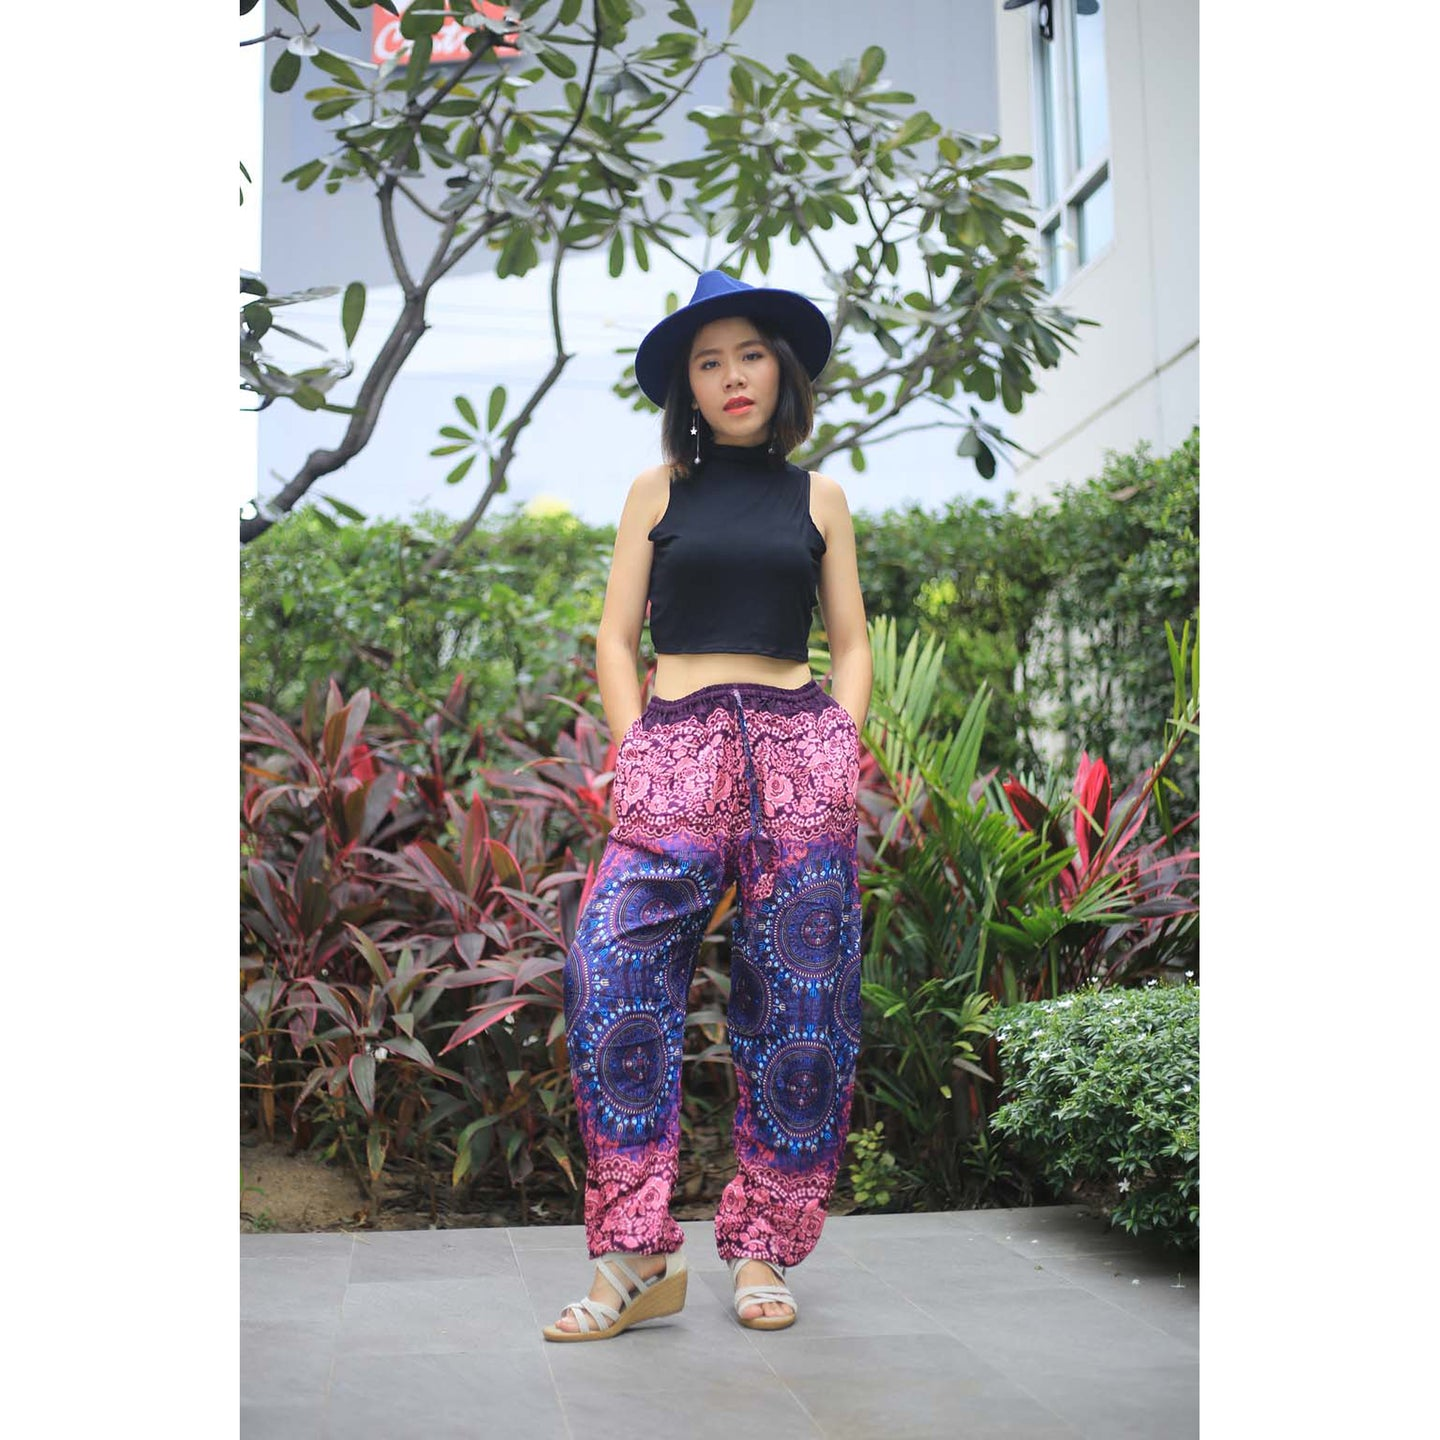 Clock nut Unisex Drawstring Genie Pants in Navy PP0110 020067 02